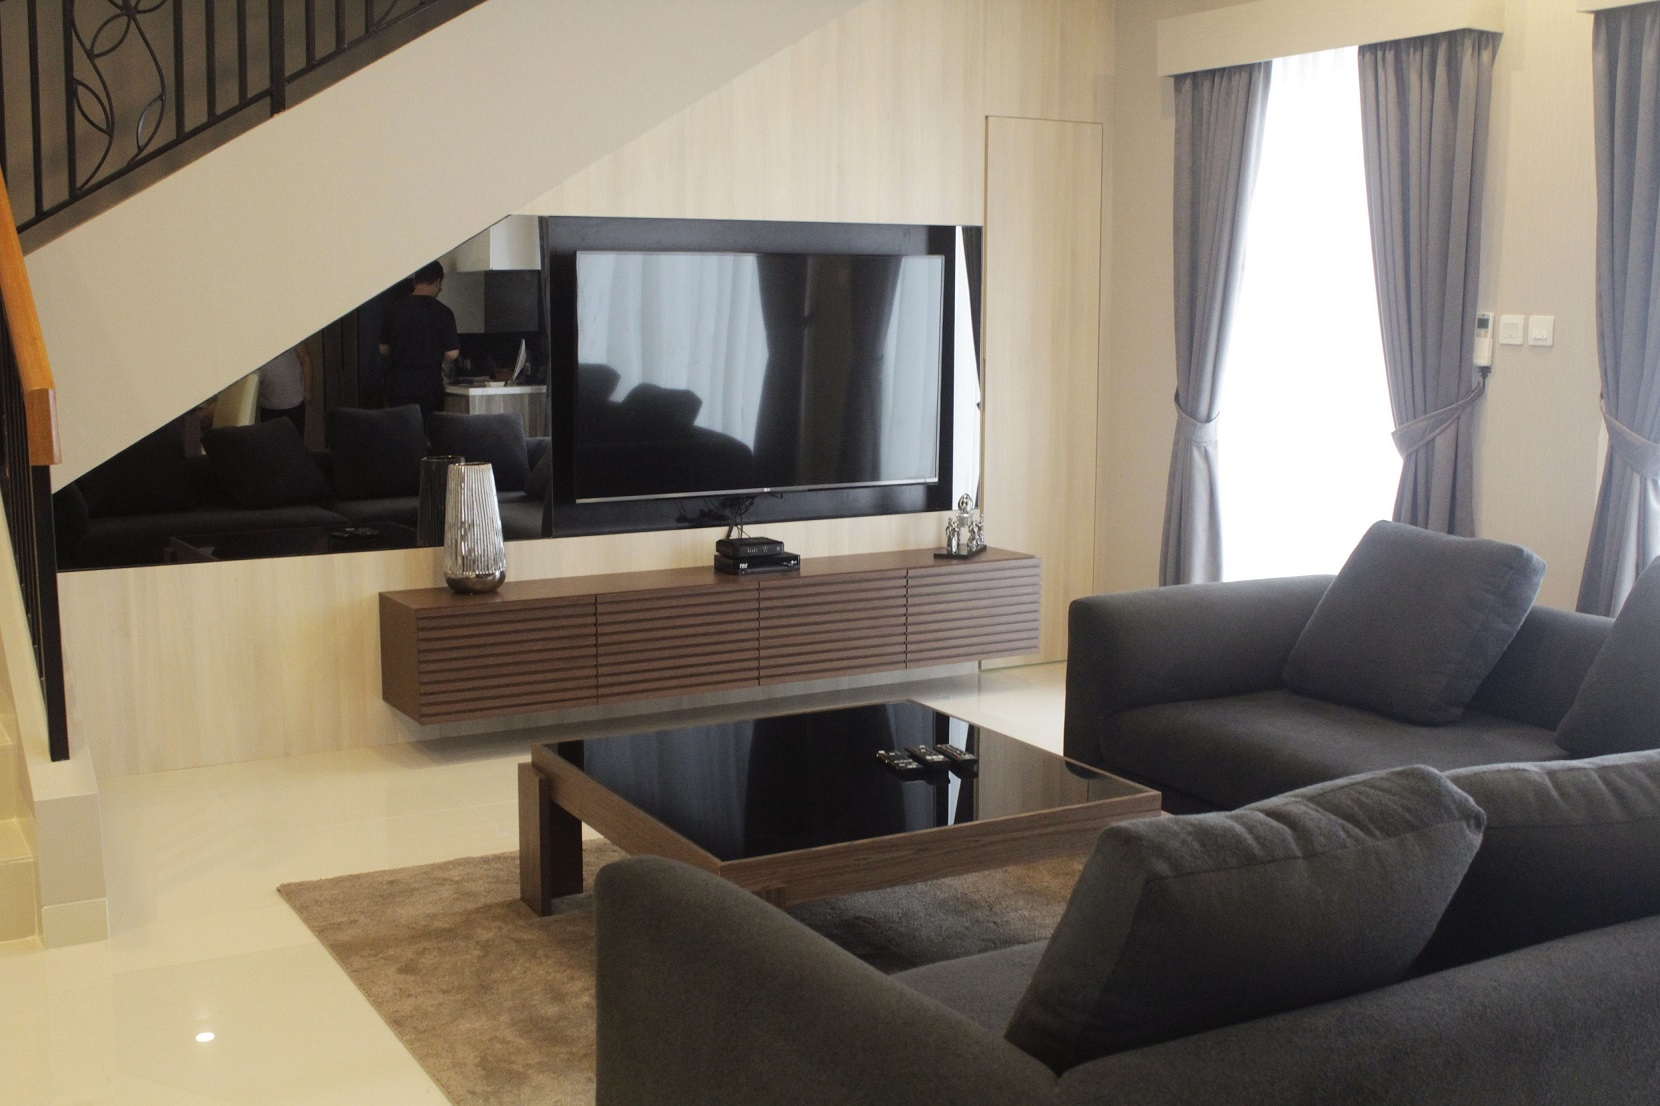 interior design of furniture. Modern-Contemporary Interior Design Concept By Using Wood Pattern \u0026 Black Mirror To Bring Elegant In The House. Of Furniture